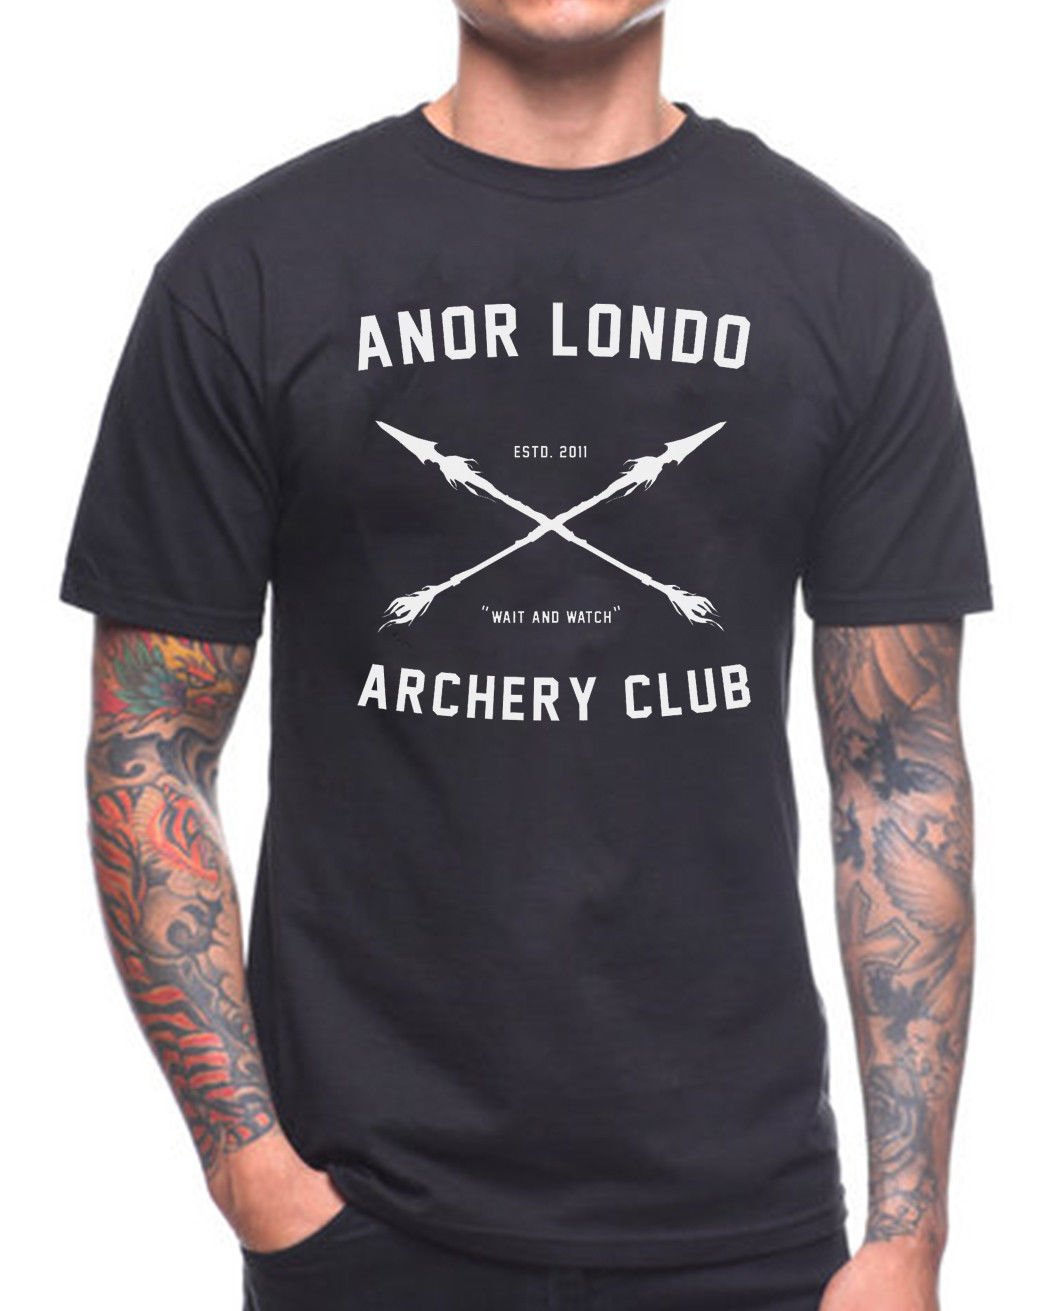 ANOR <font><b>LONDO</b></font> ARCHERY CLUB T SHIRT DARK SOULS XBOX GAME GAMER BIRTHDAY PRESENT Funny Tops Tee New Unisex Funny Tops free shipping image